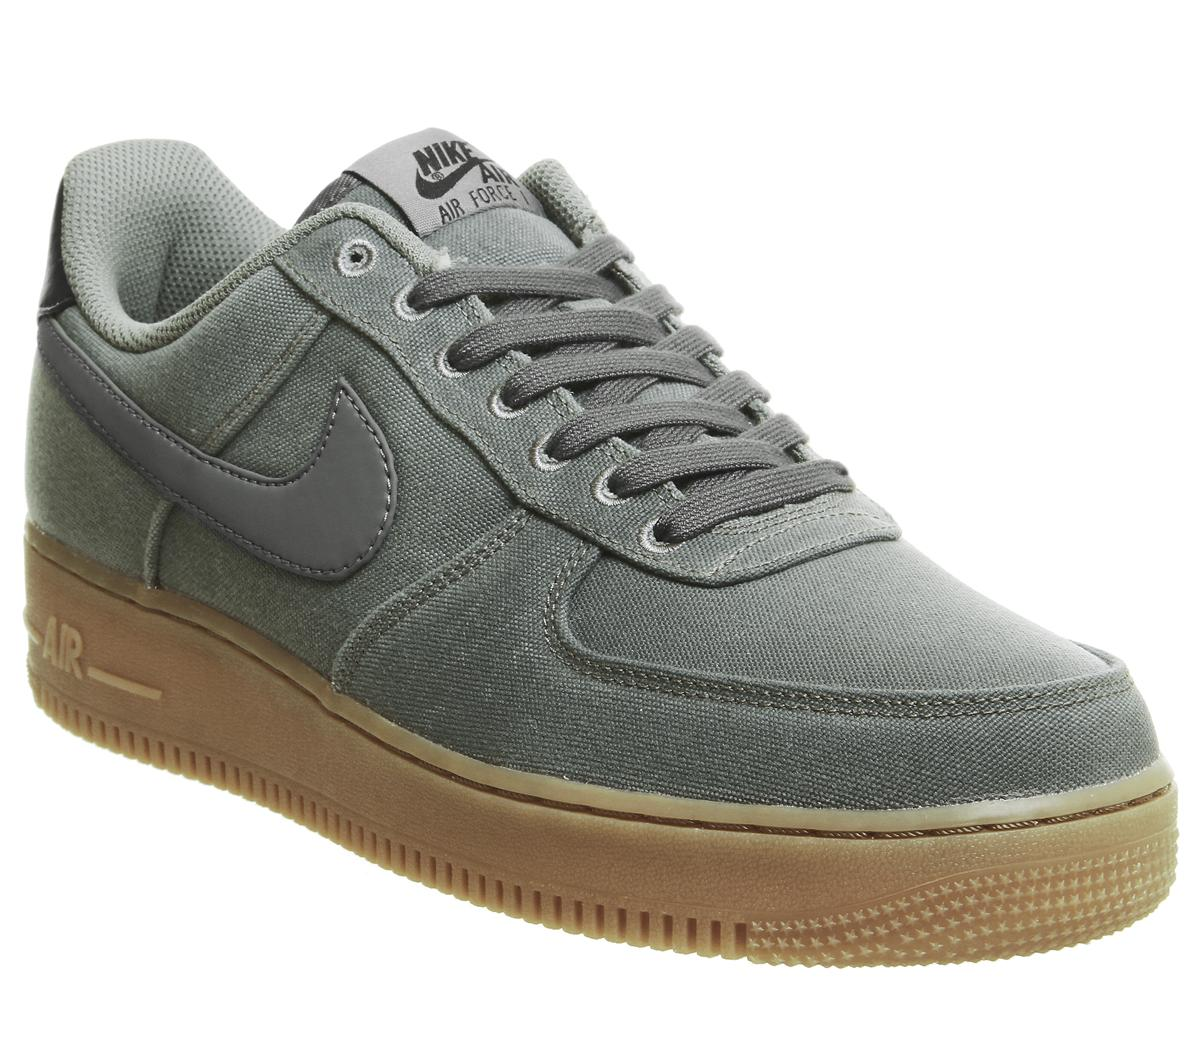 air force 1 with gum sole